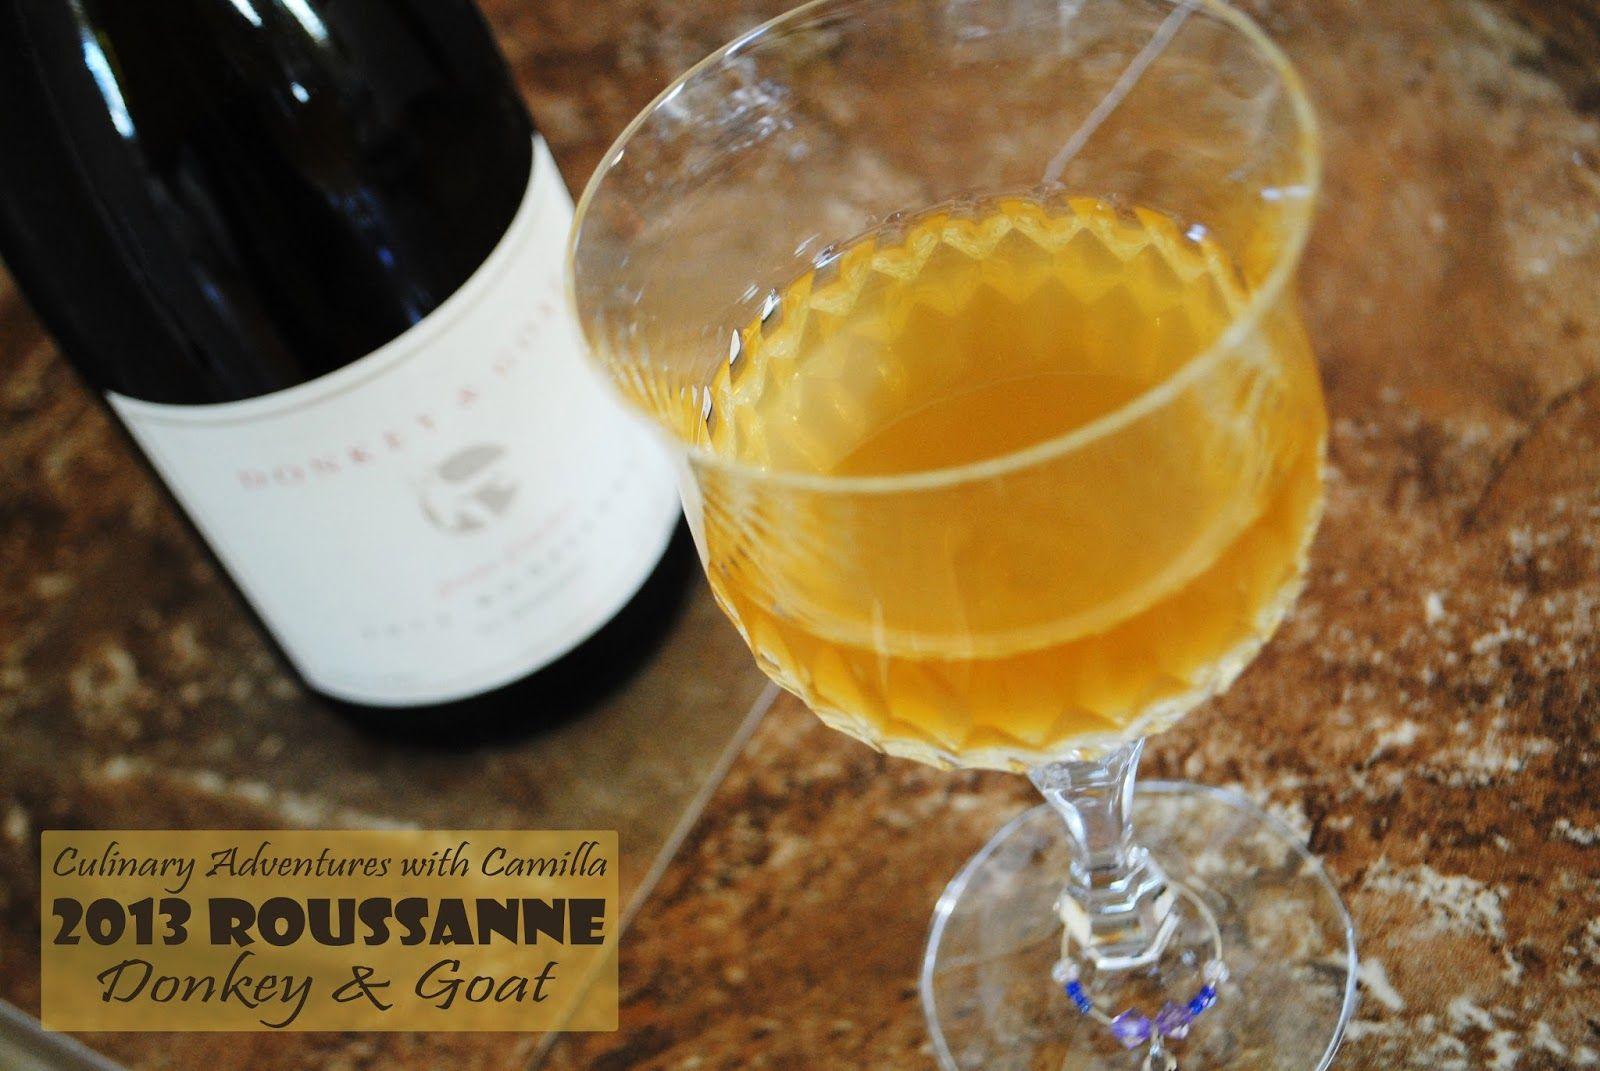 Putting Down Roots Wine Pairing: Donkey & Goat 2013 Roussanne